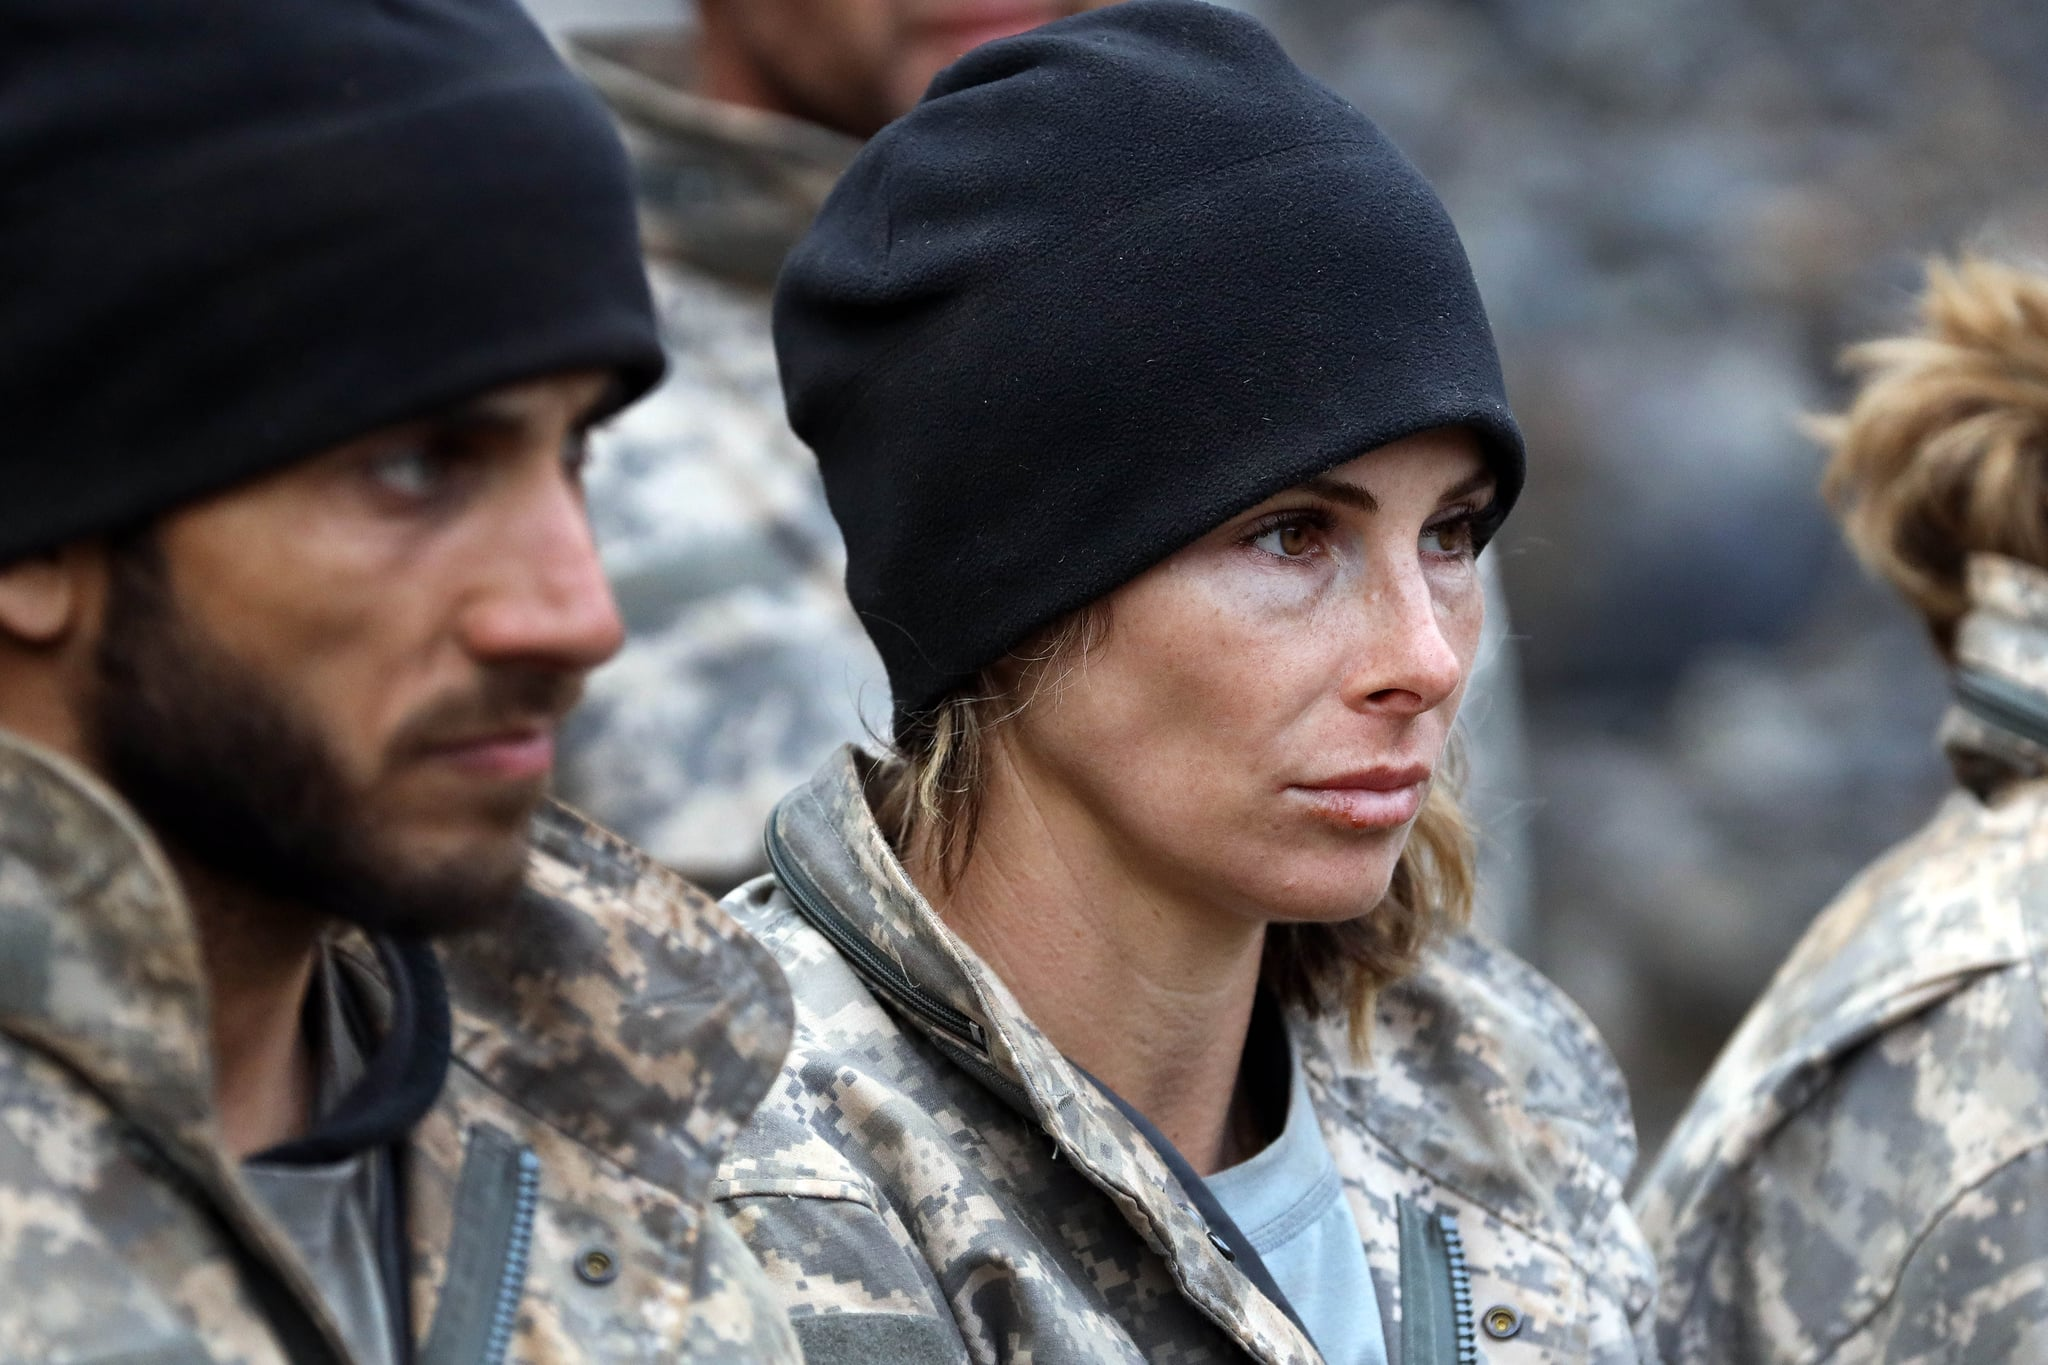 PHOTOGRAPH BY NIGEL WRIGHT. WRIGHTPHOTO1@MAC.COMSAS WHO DARES WINS SERIES 12020.THIS PICTURE SHOWS: EPISODE 9.